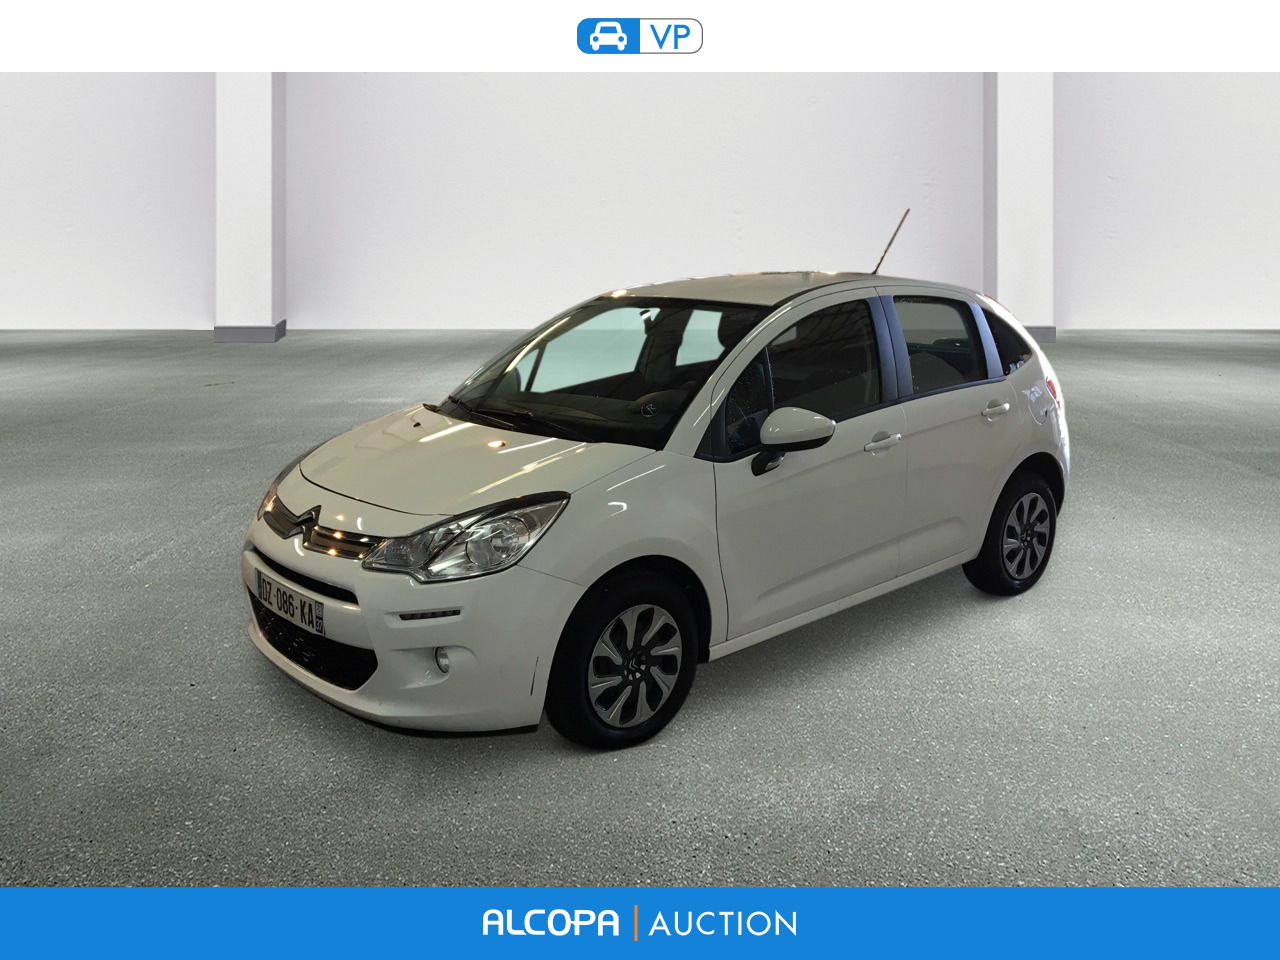 citroen c3 c3 ste 1 6 bluehdi 75 confort tours alcopa auction. Black Bedroom Furniture Sets. Home Design Ideas